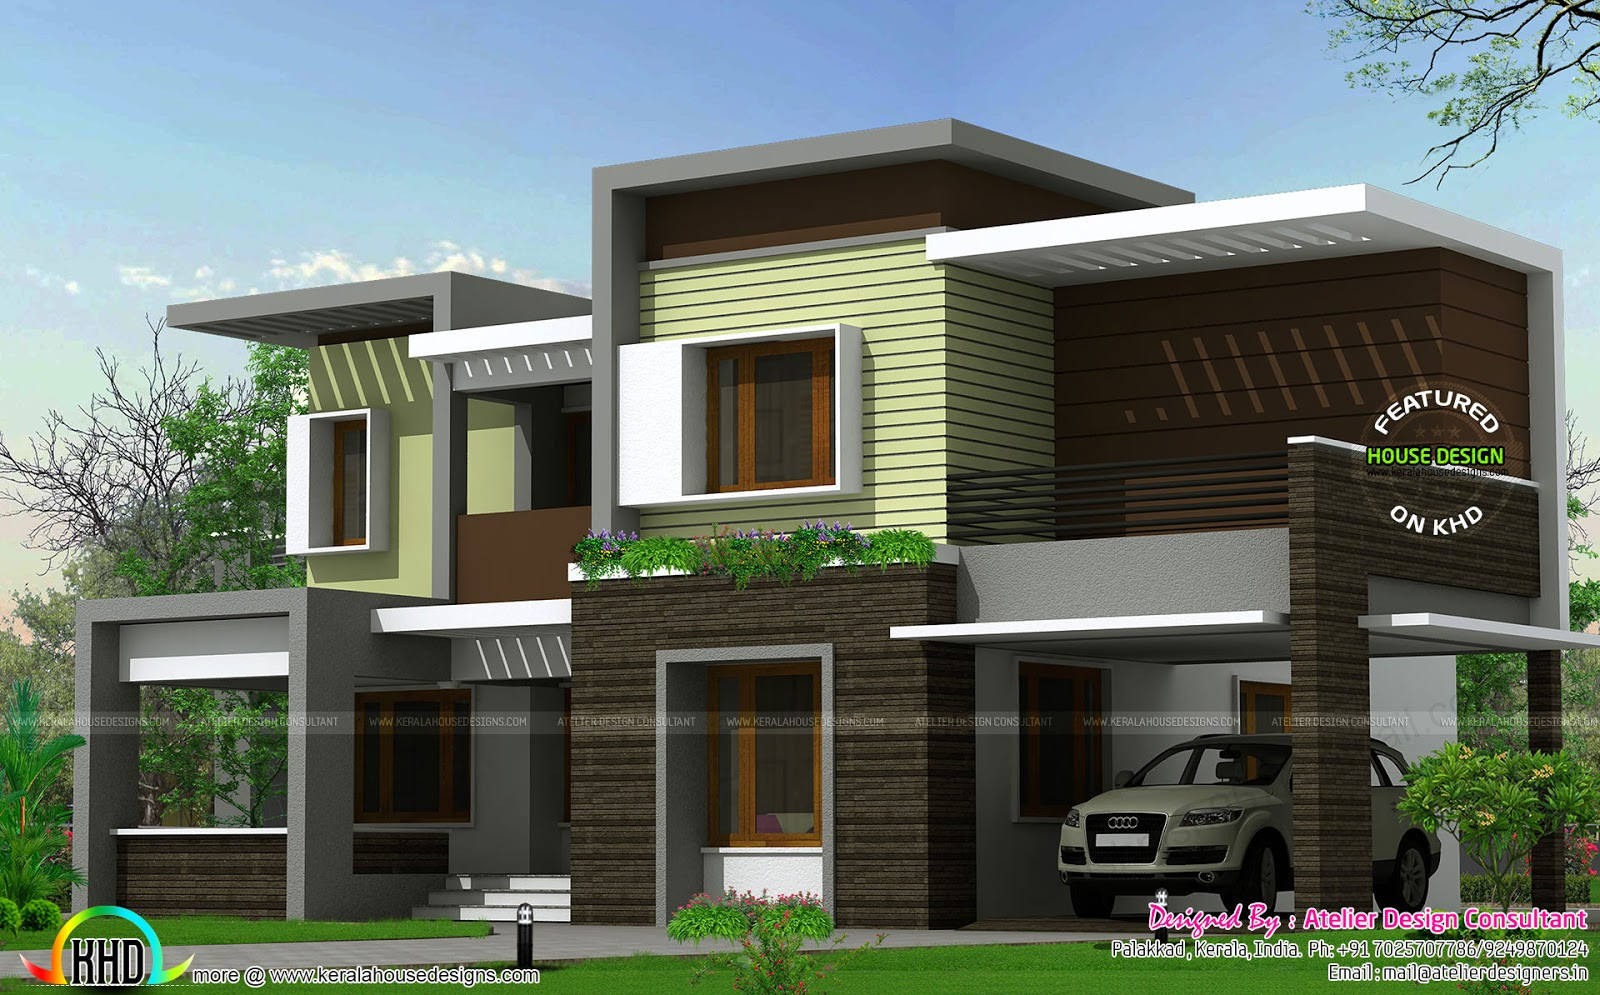 Modern box type house 2425 sq ft kerala home design and for Modern box type house design